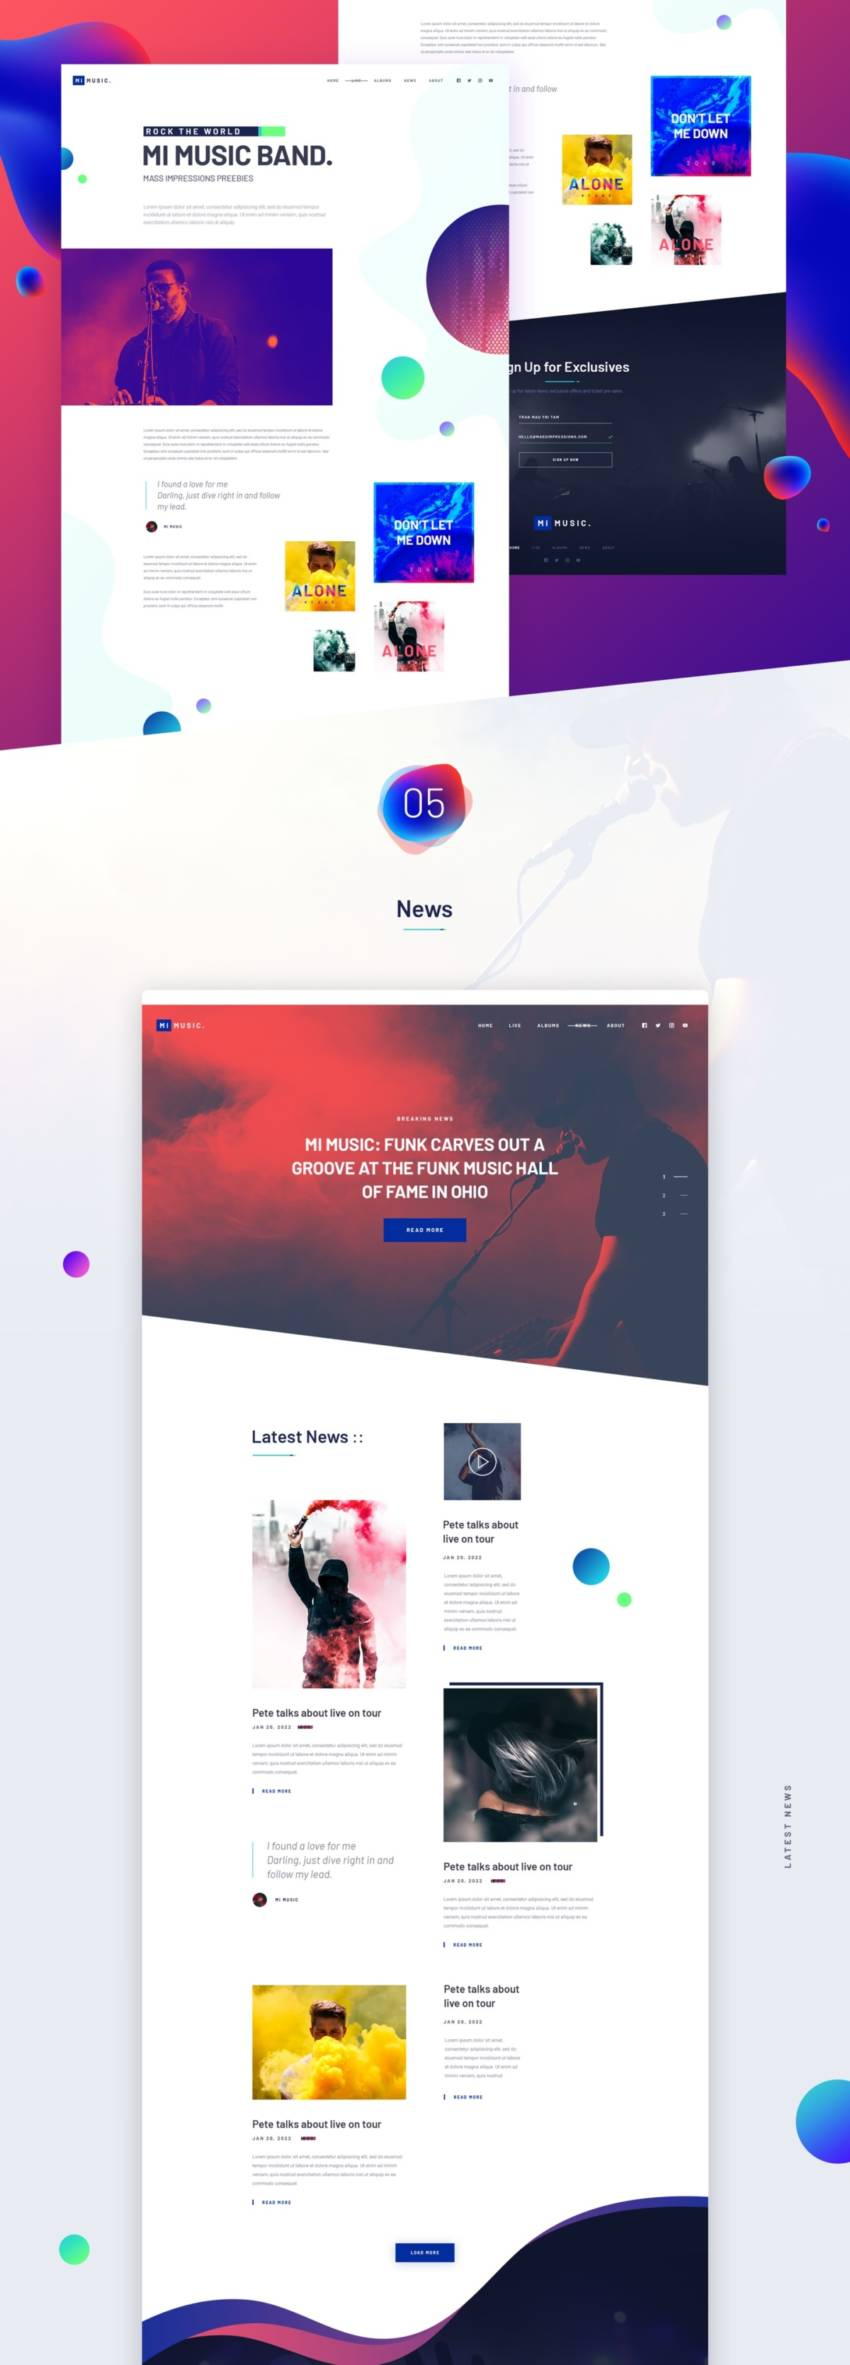 MI MUSIC - Free Website Template (.Psd) скачать бесплатно